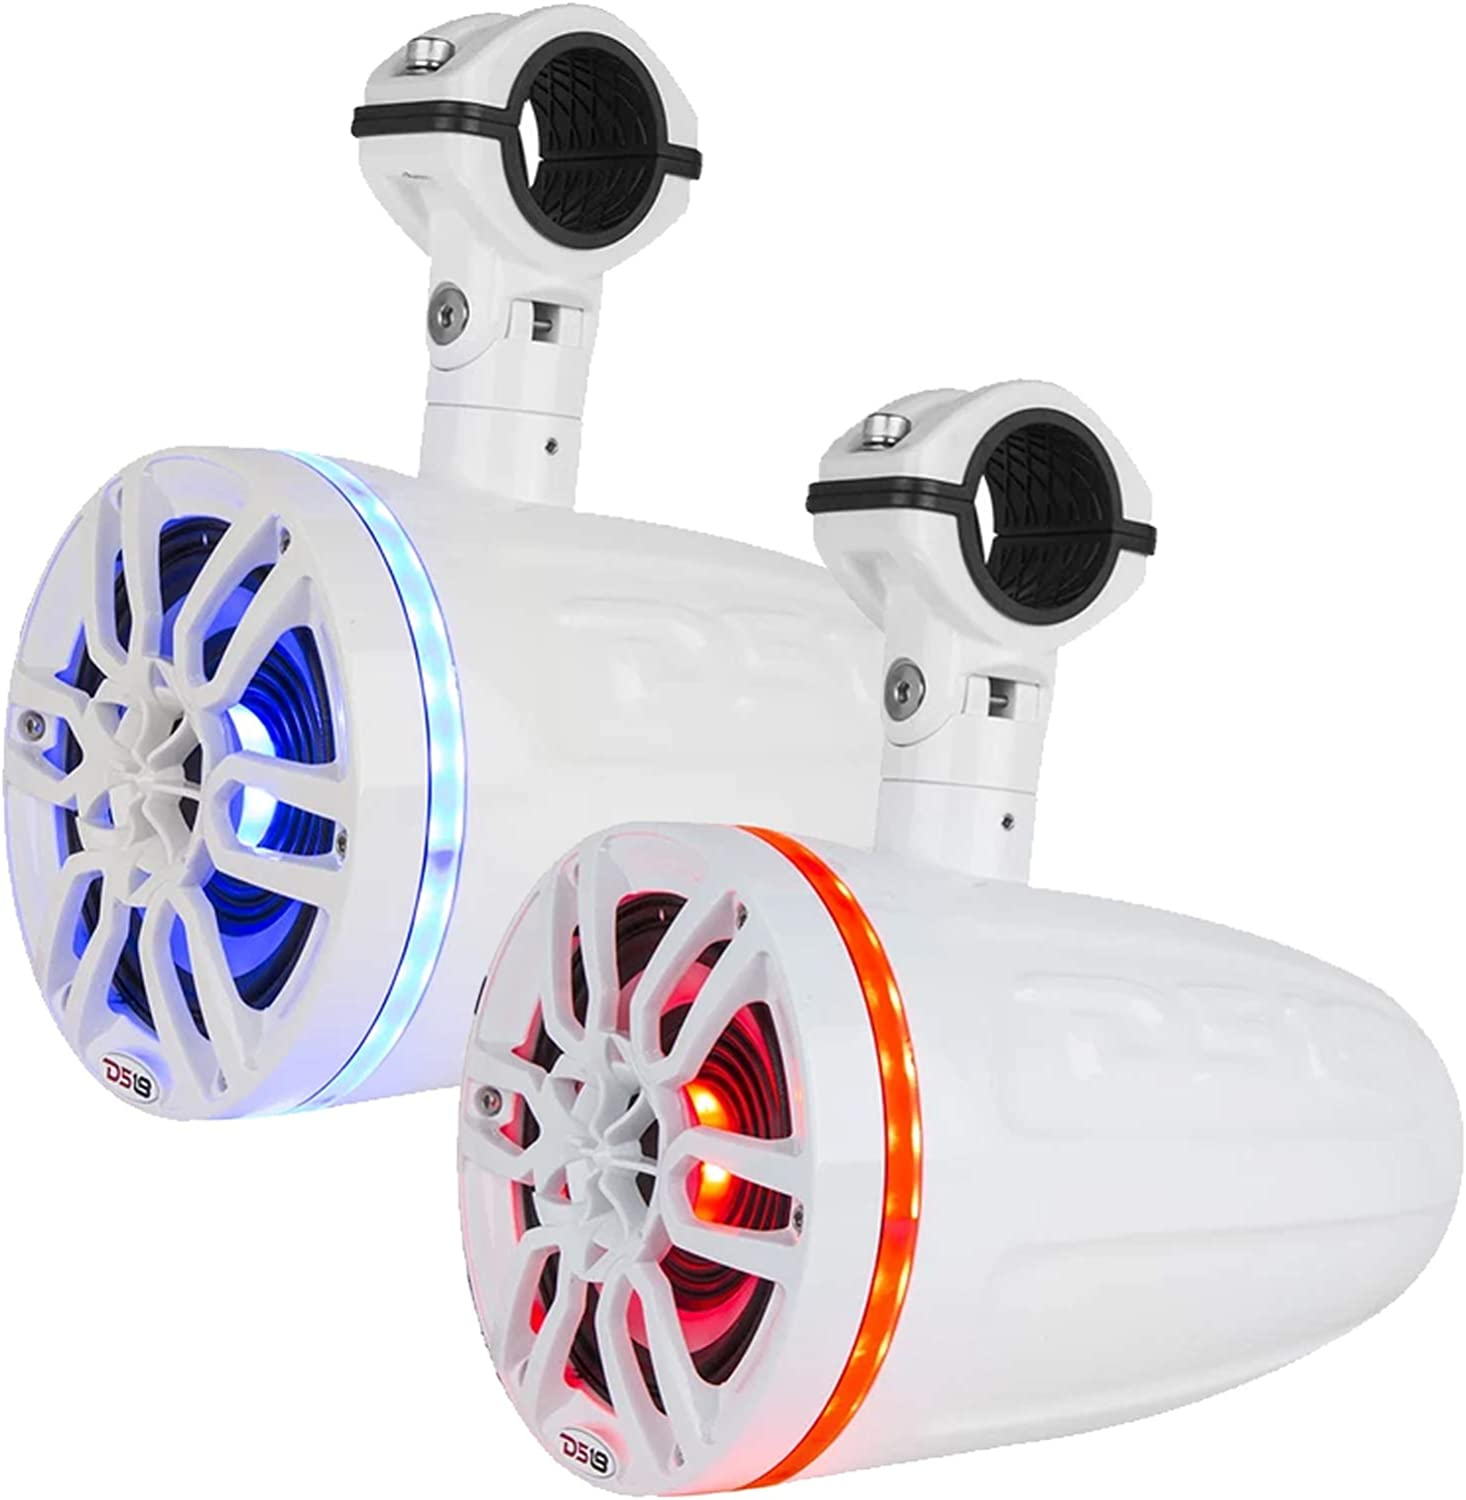 8 Wakeboard Tower Pod Marine Weatherproof Speakers with RGB Multicolor LED White 2 Pairs 5-Channel Marine 1600 Watts Amplifier